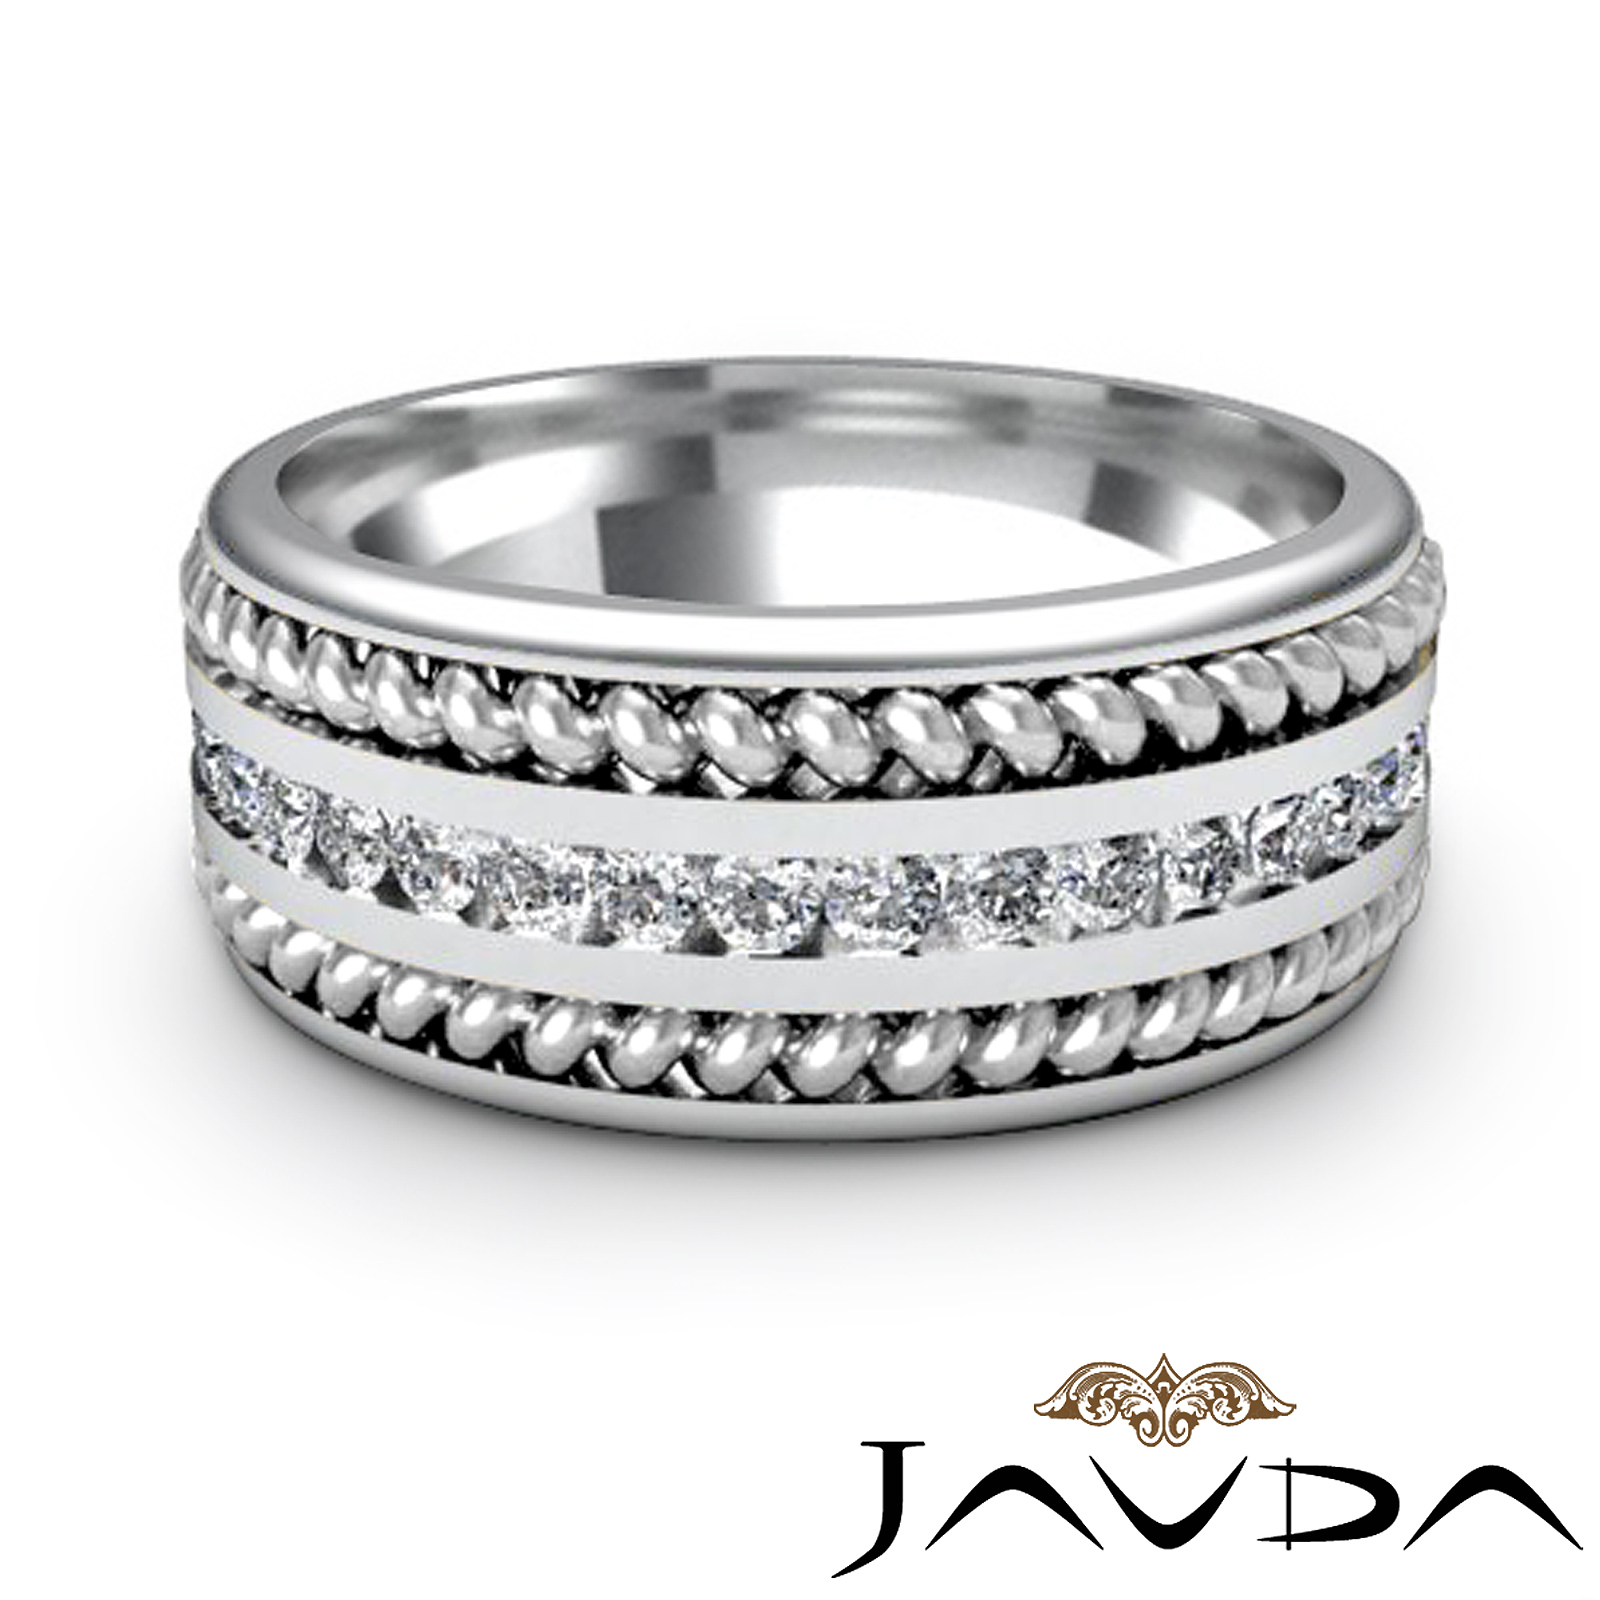 Pave diamond rope eternity solid ring mens wedding for Mens eternity wedding band